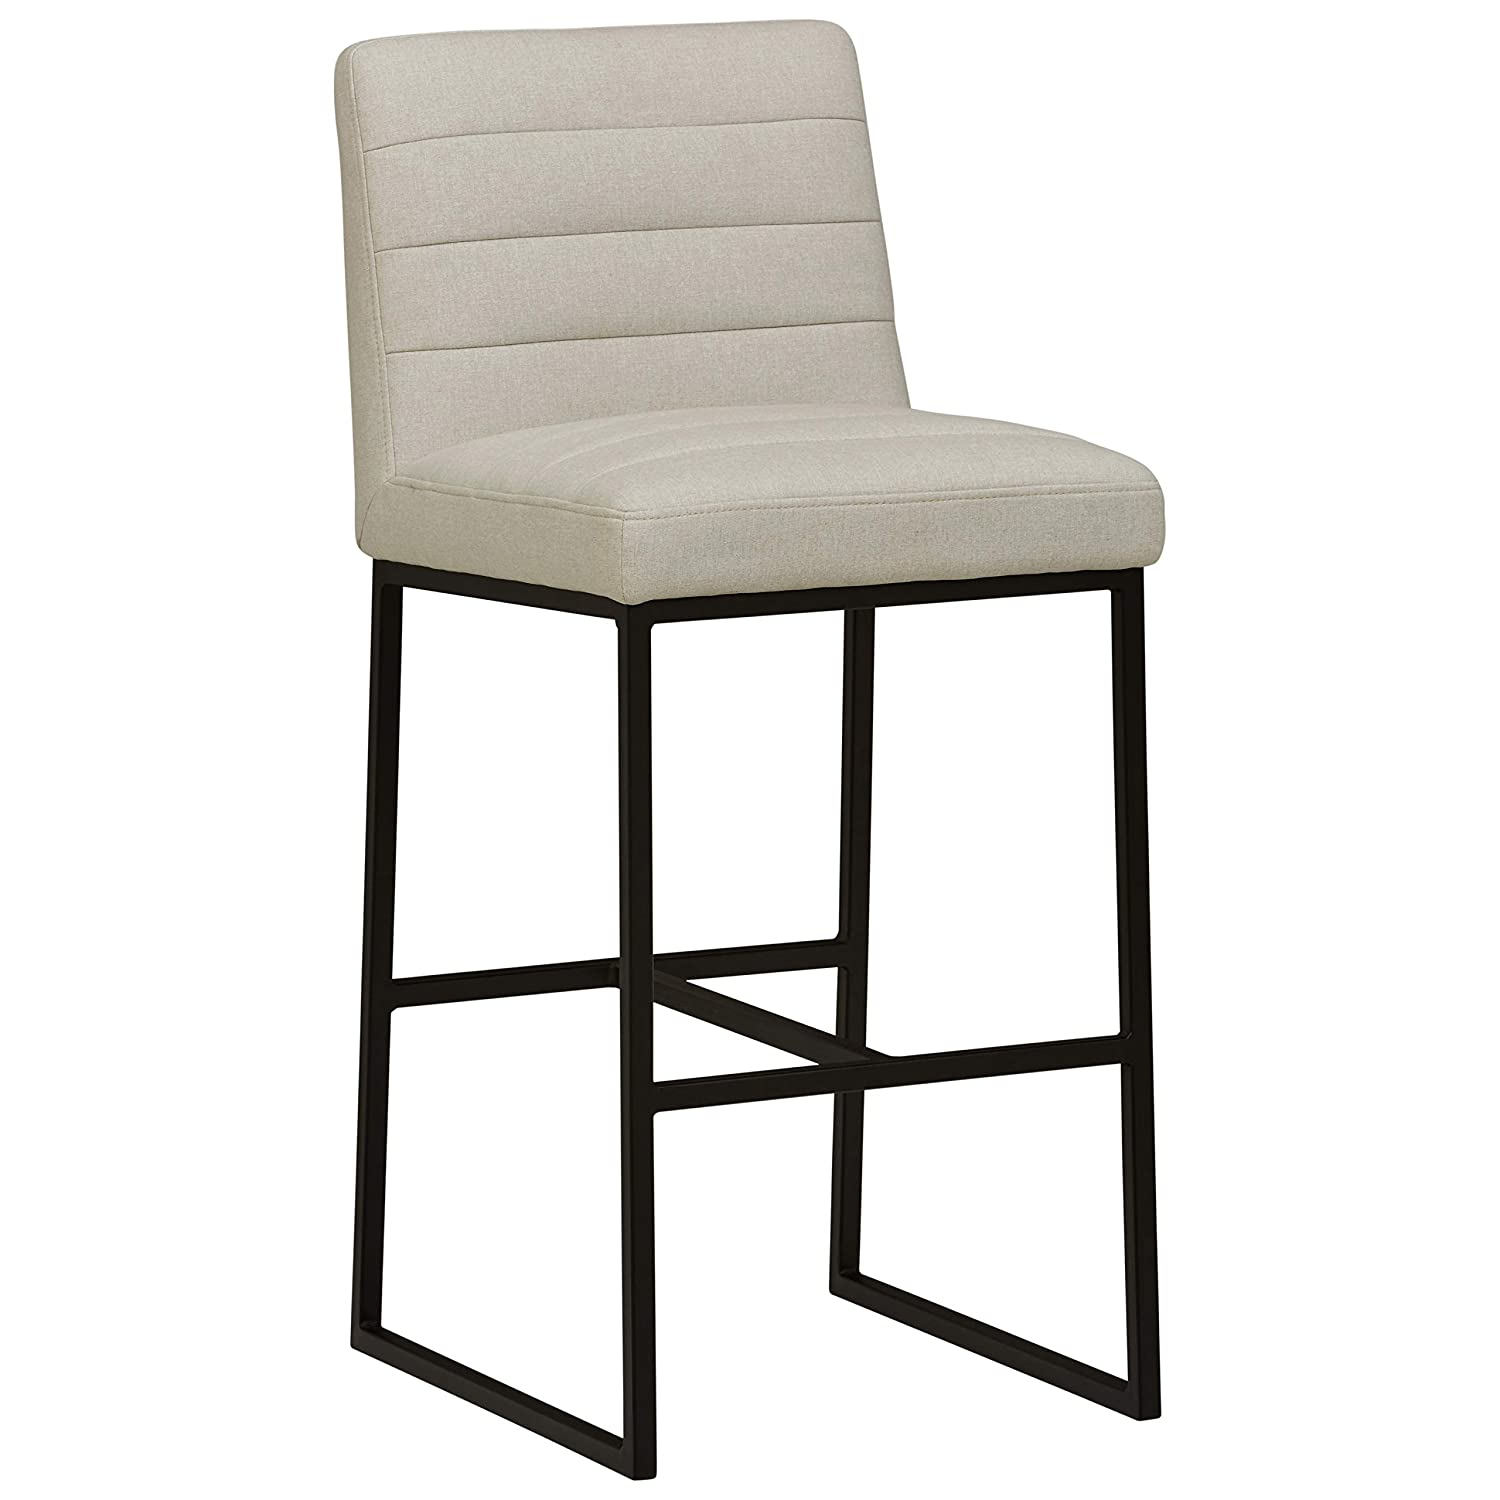 Astounding Rivet Decatur Modern Kitchen Counter Bar Stool 42 Inch Height Chalk Gmtry Best Dining Table And Chair Ideas Images Gmtryco